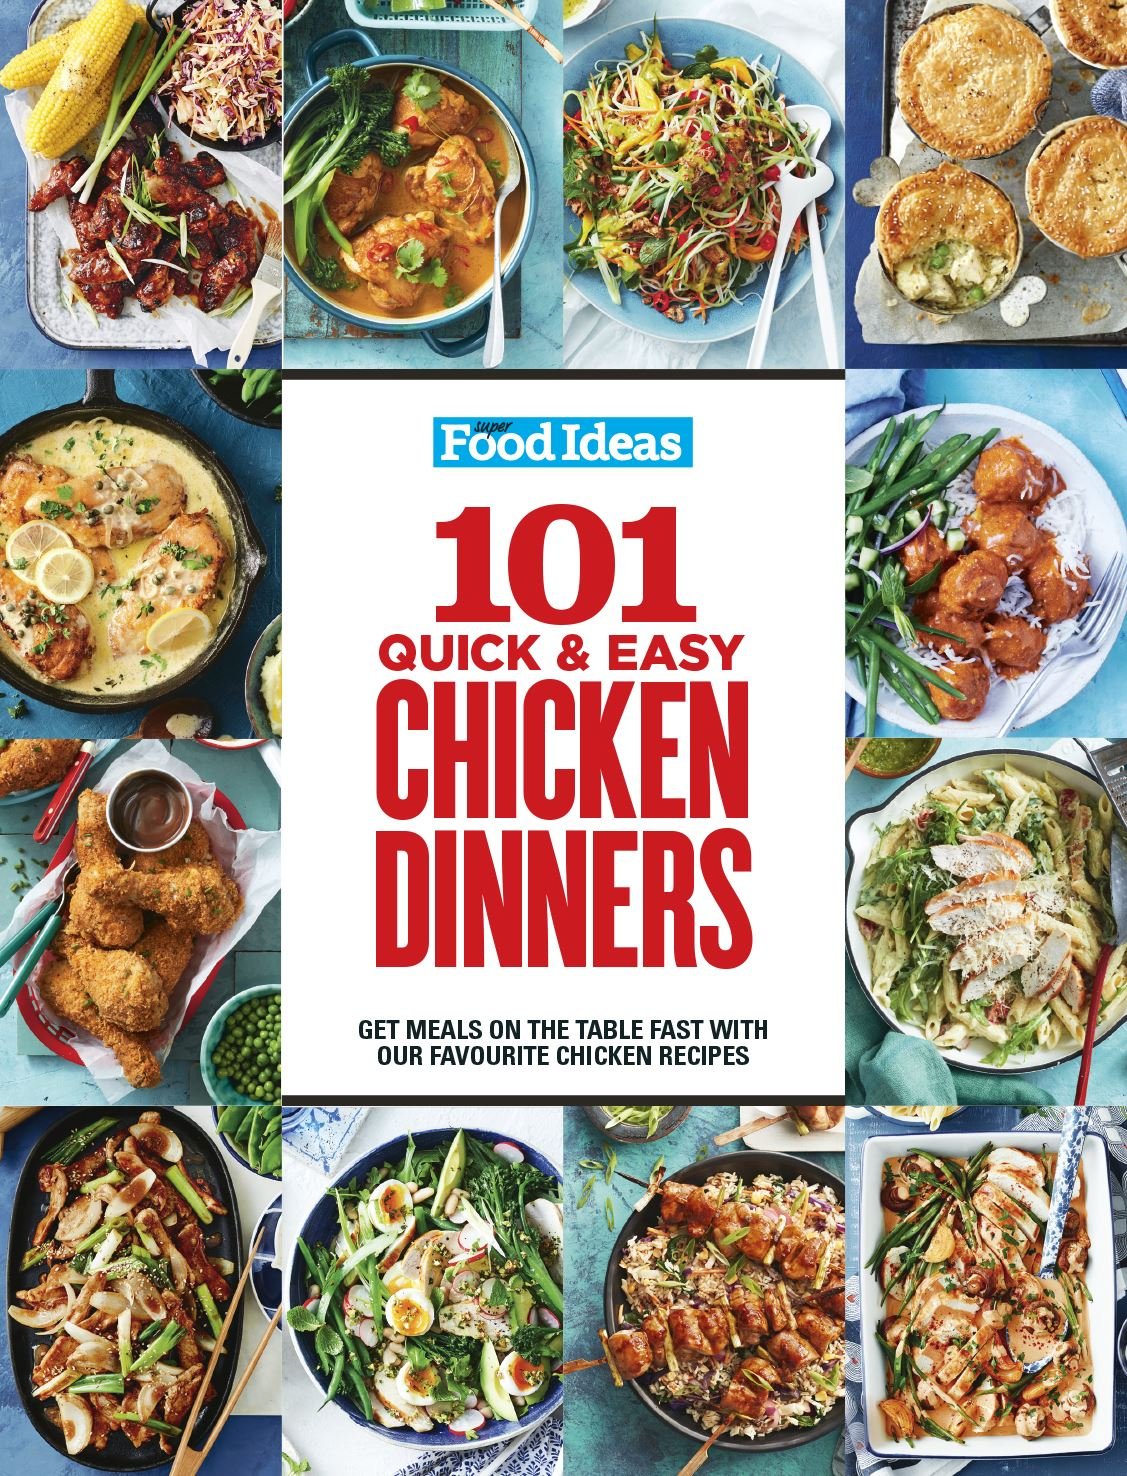 Super Food Ideas 101 Quick and Easy Chicken Dinners